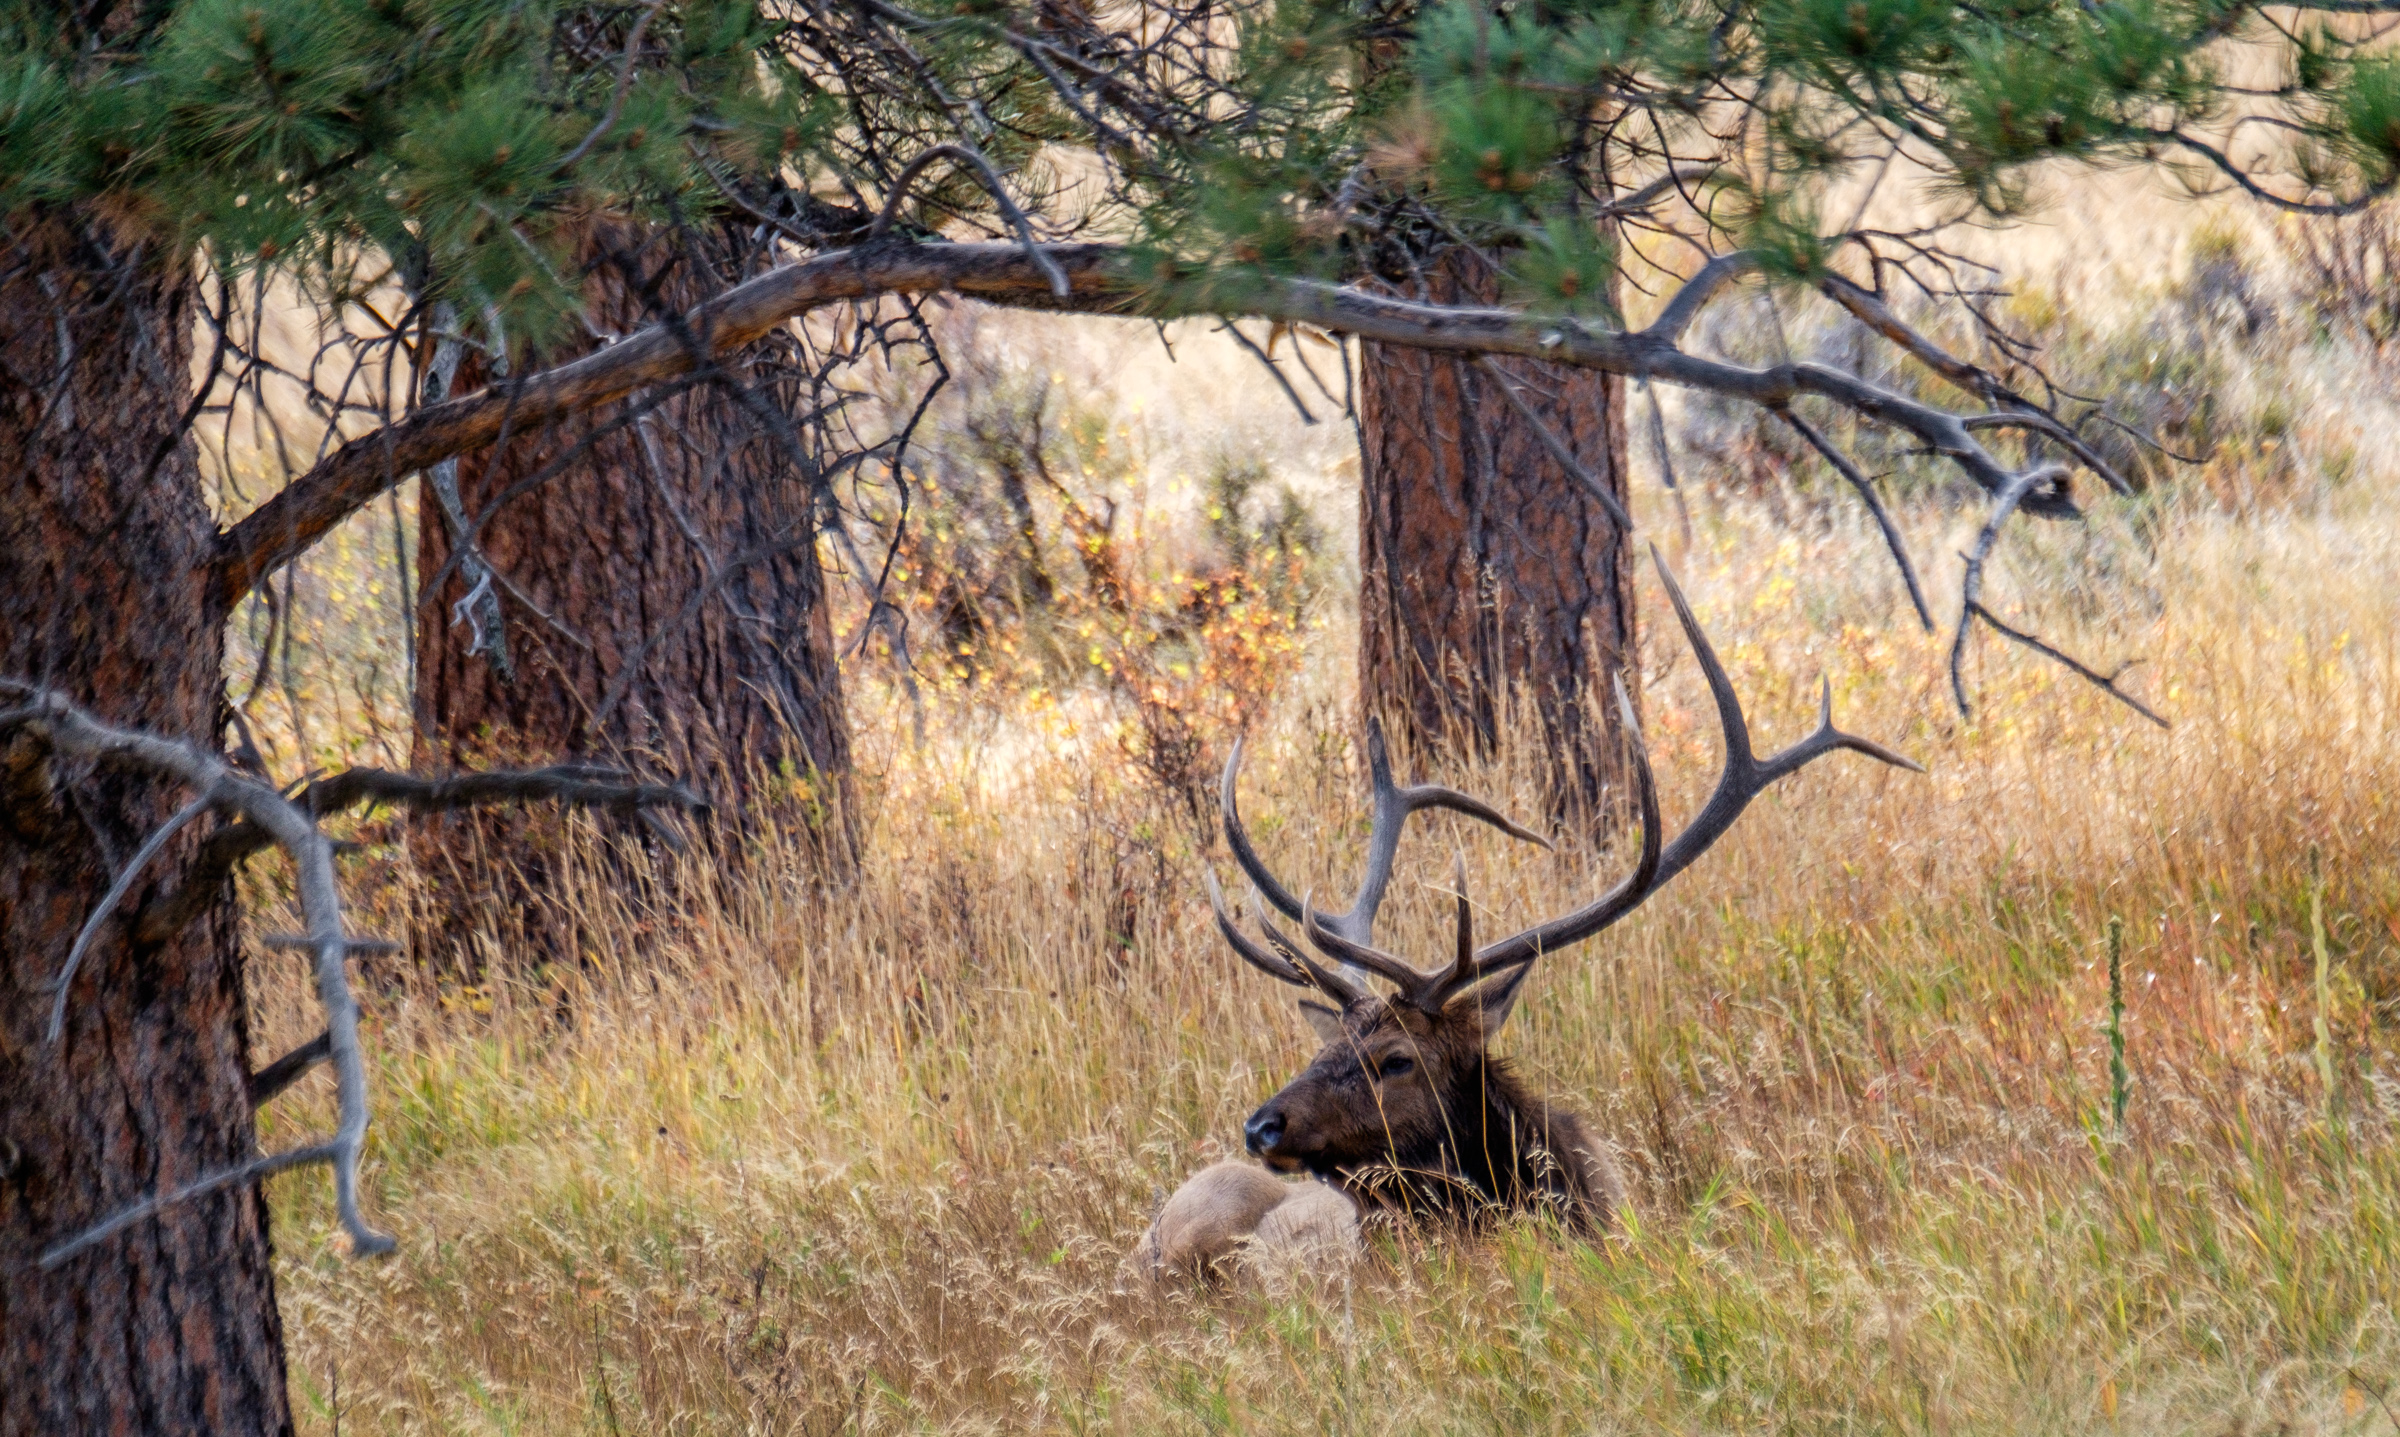 20161006-JI-Rocky Mountain National Park-_DSF2694.jpg